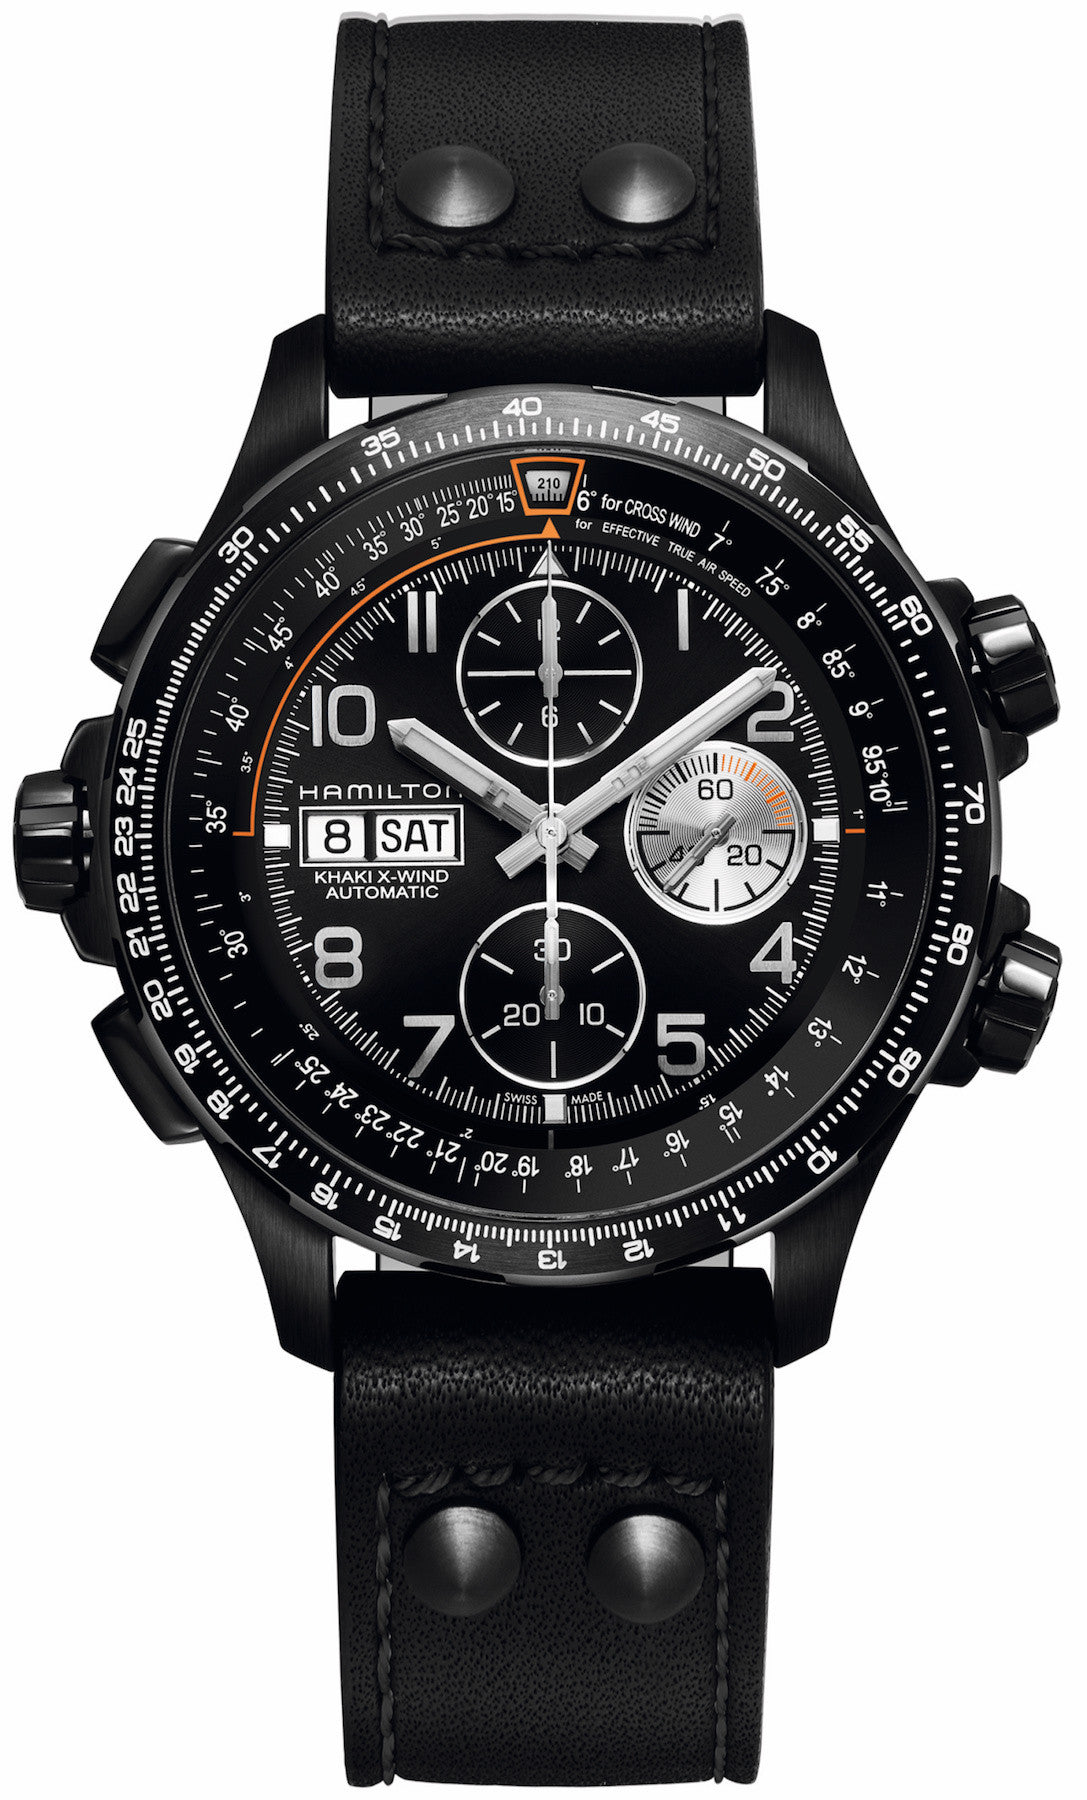 Hamilton Watch Khaki Aviation XWind Auto Chrono PreOrder